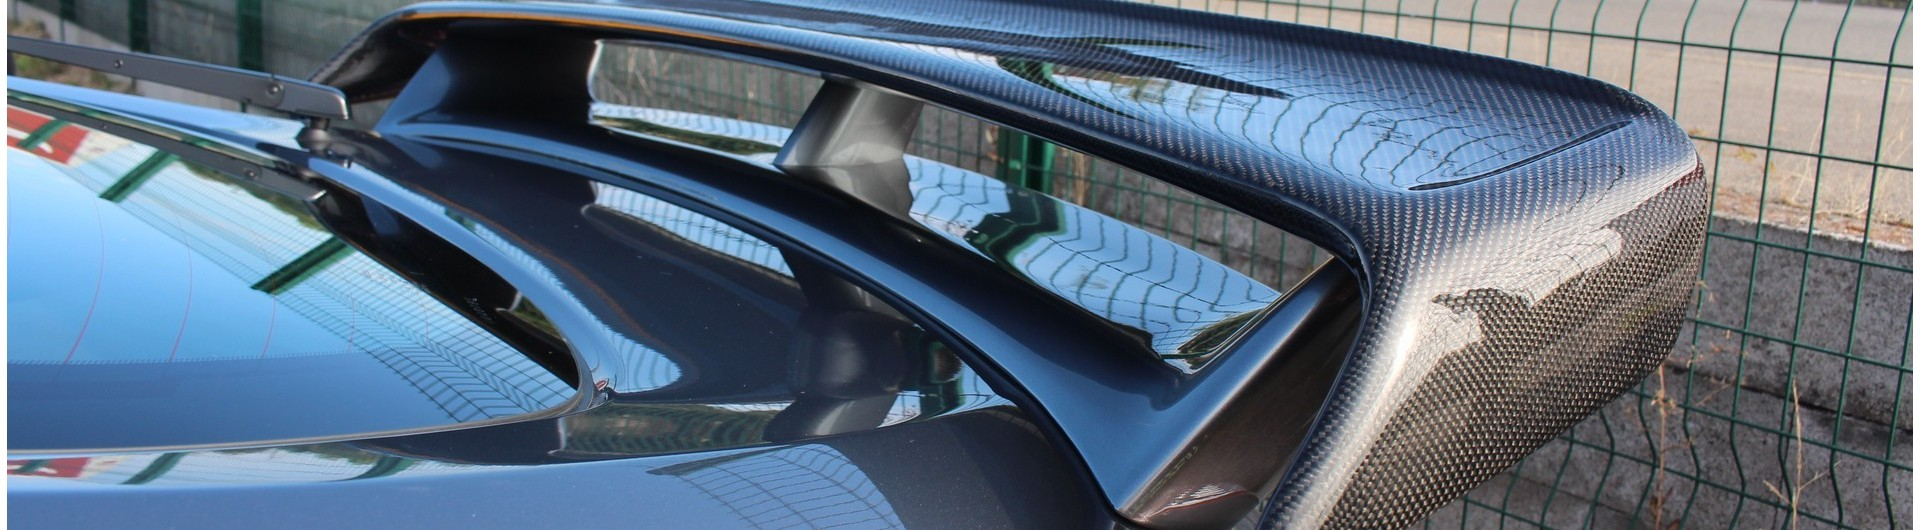 kit carrosserie spoiler aileron carbone lame